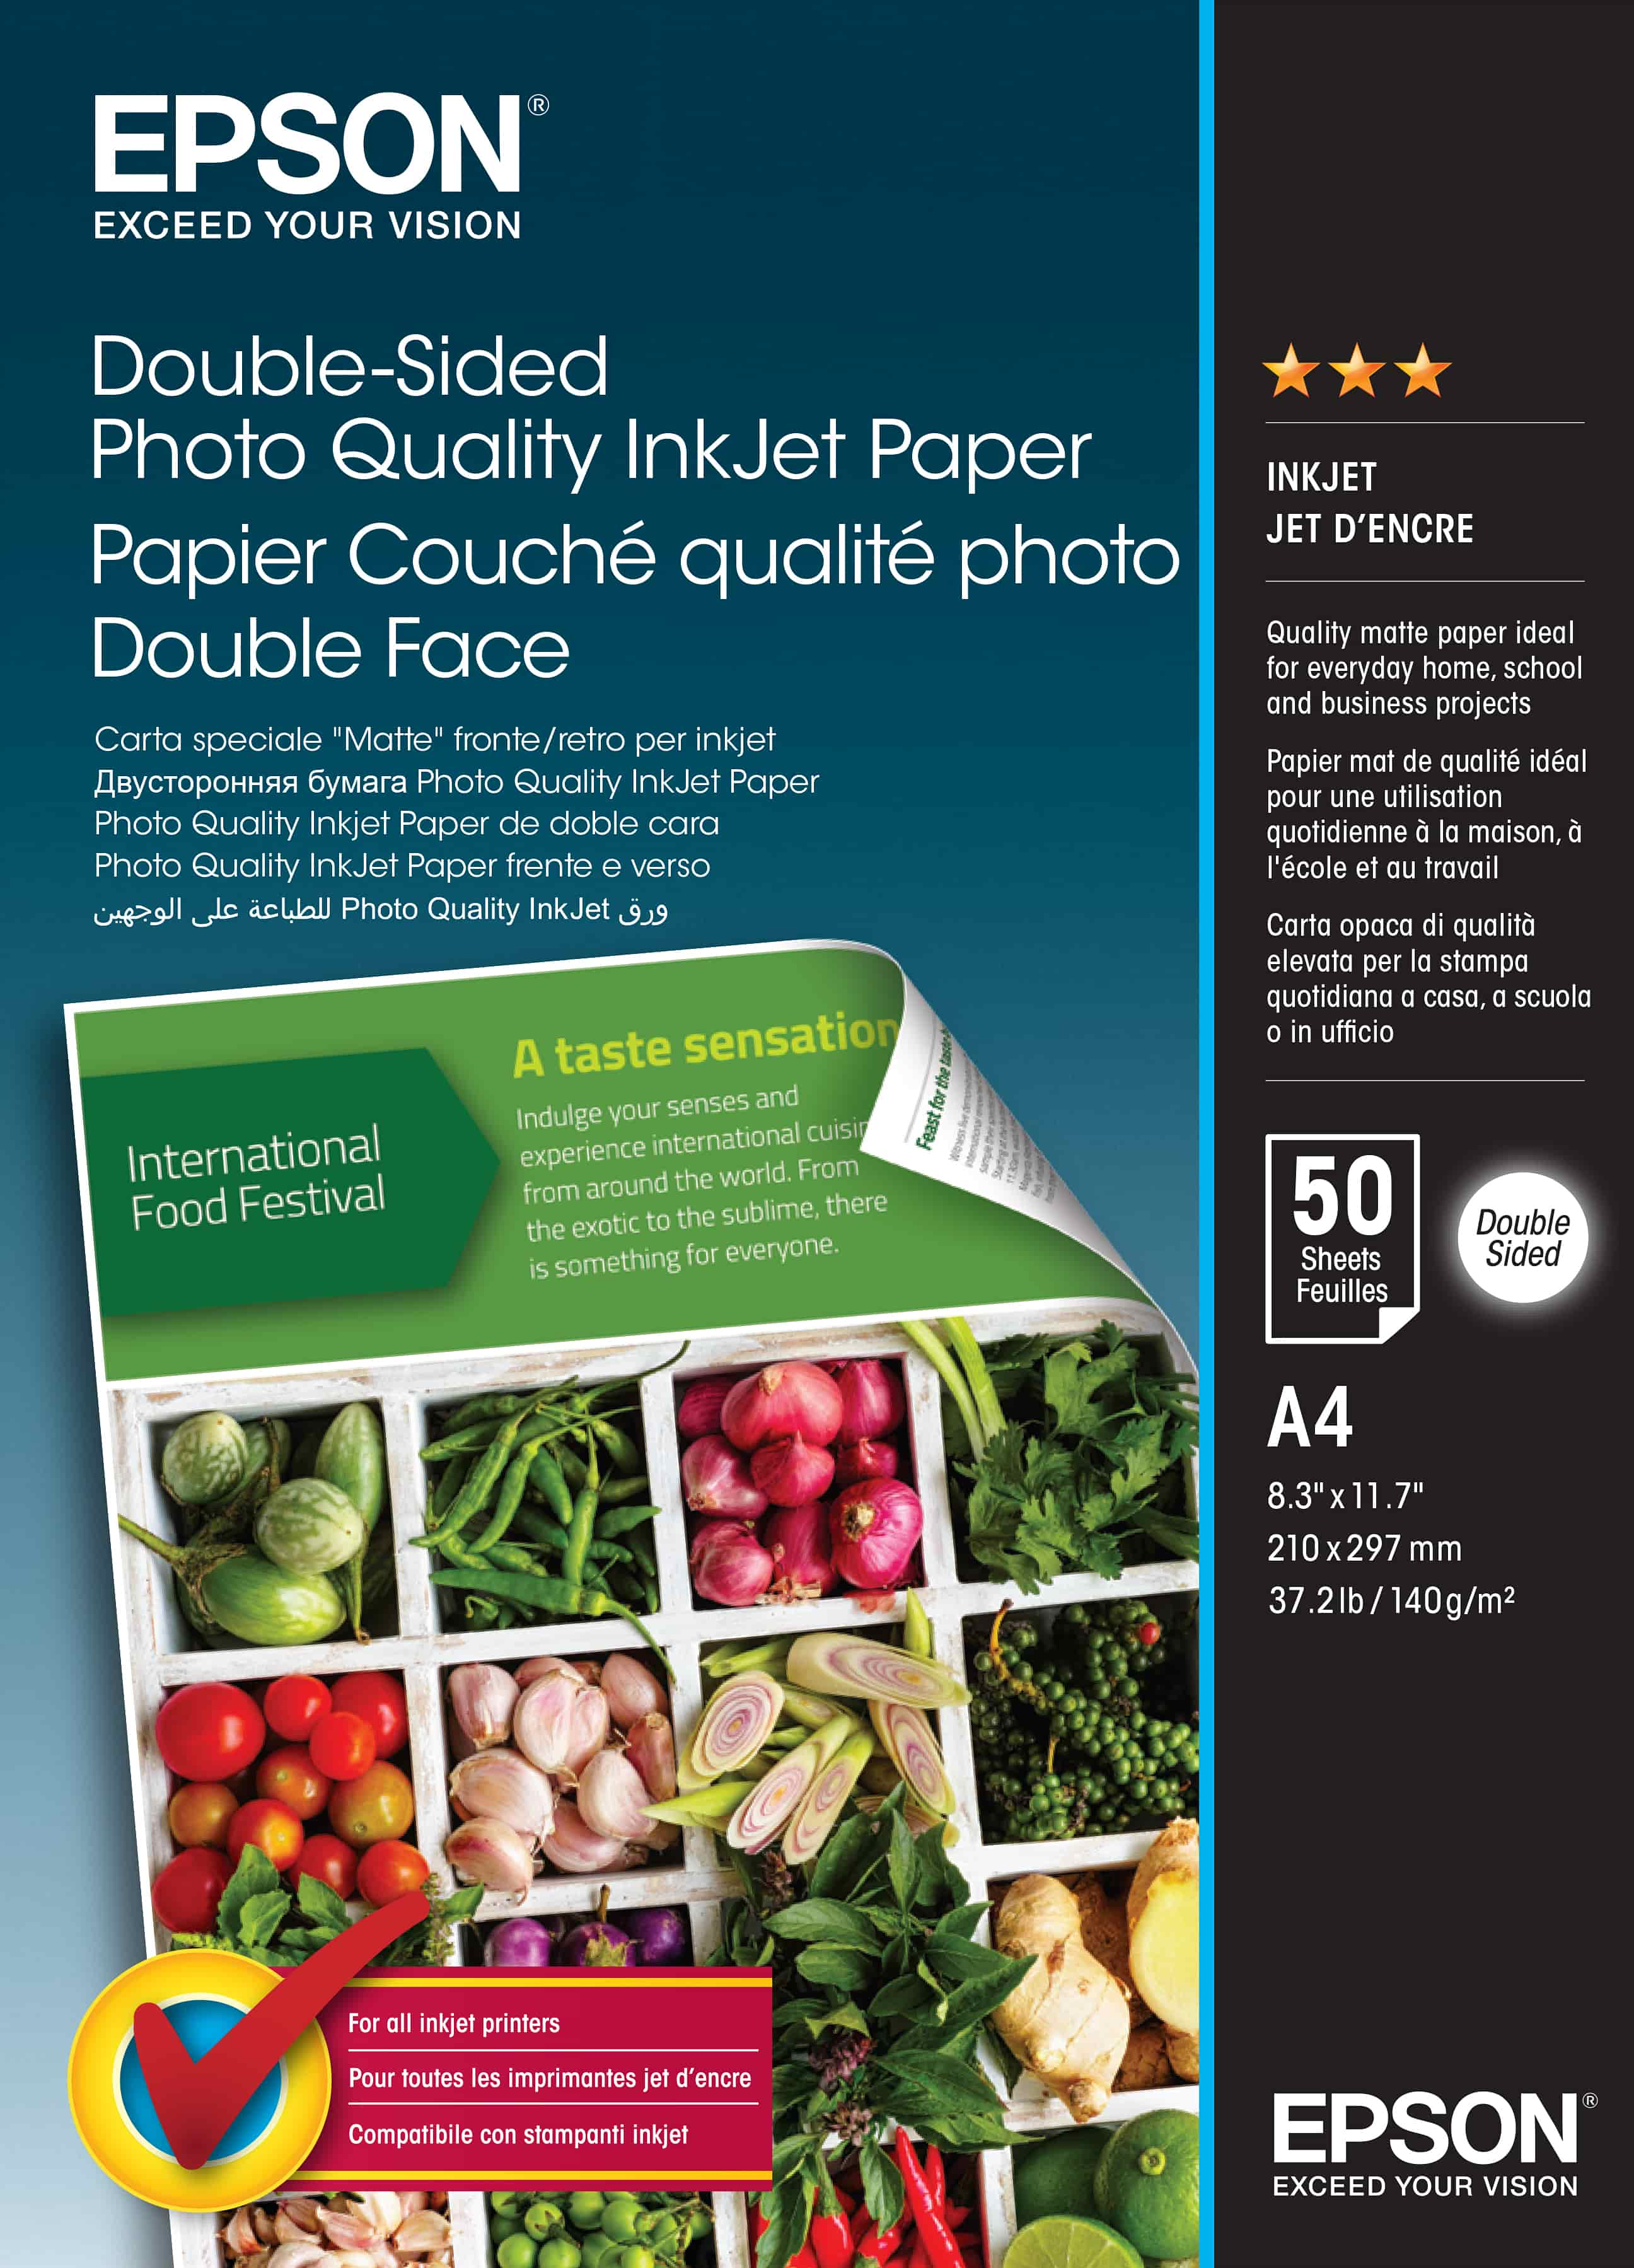 Double-Sided Photo Quality Inkjet Paper, A4, 50 sheets